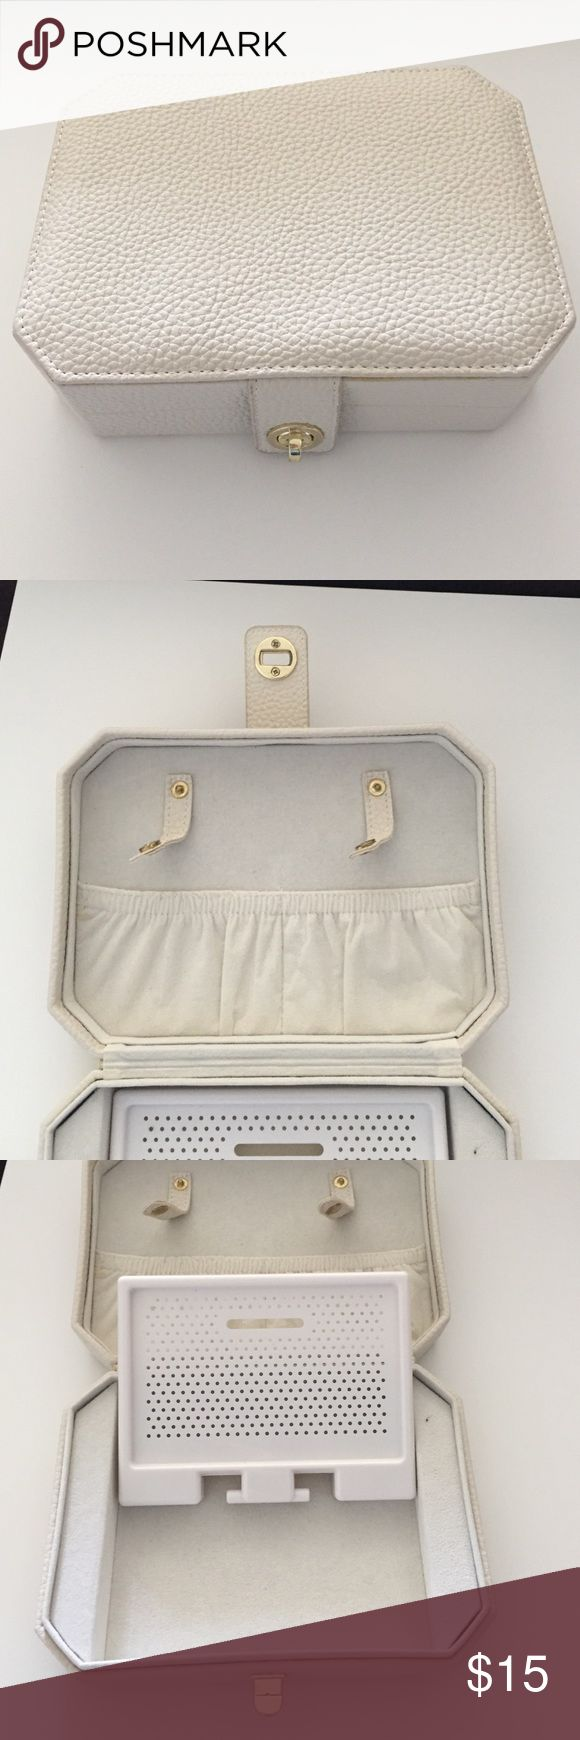 Travel jewelry box. NWOT travel jewelry box with hard leather case Bags Travel Bags